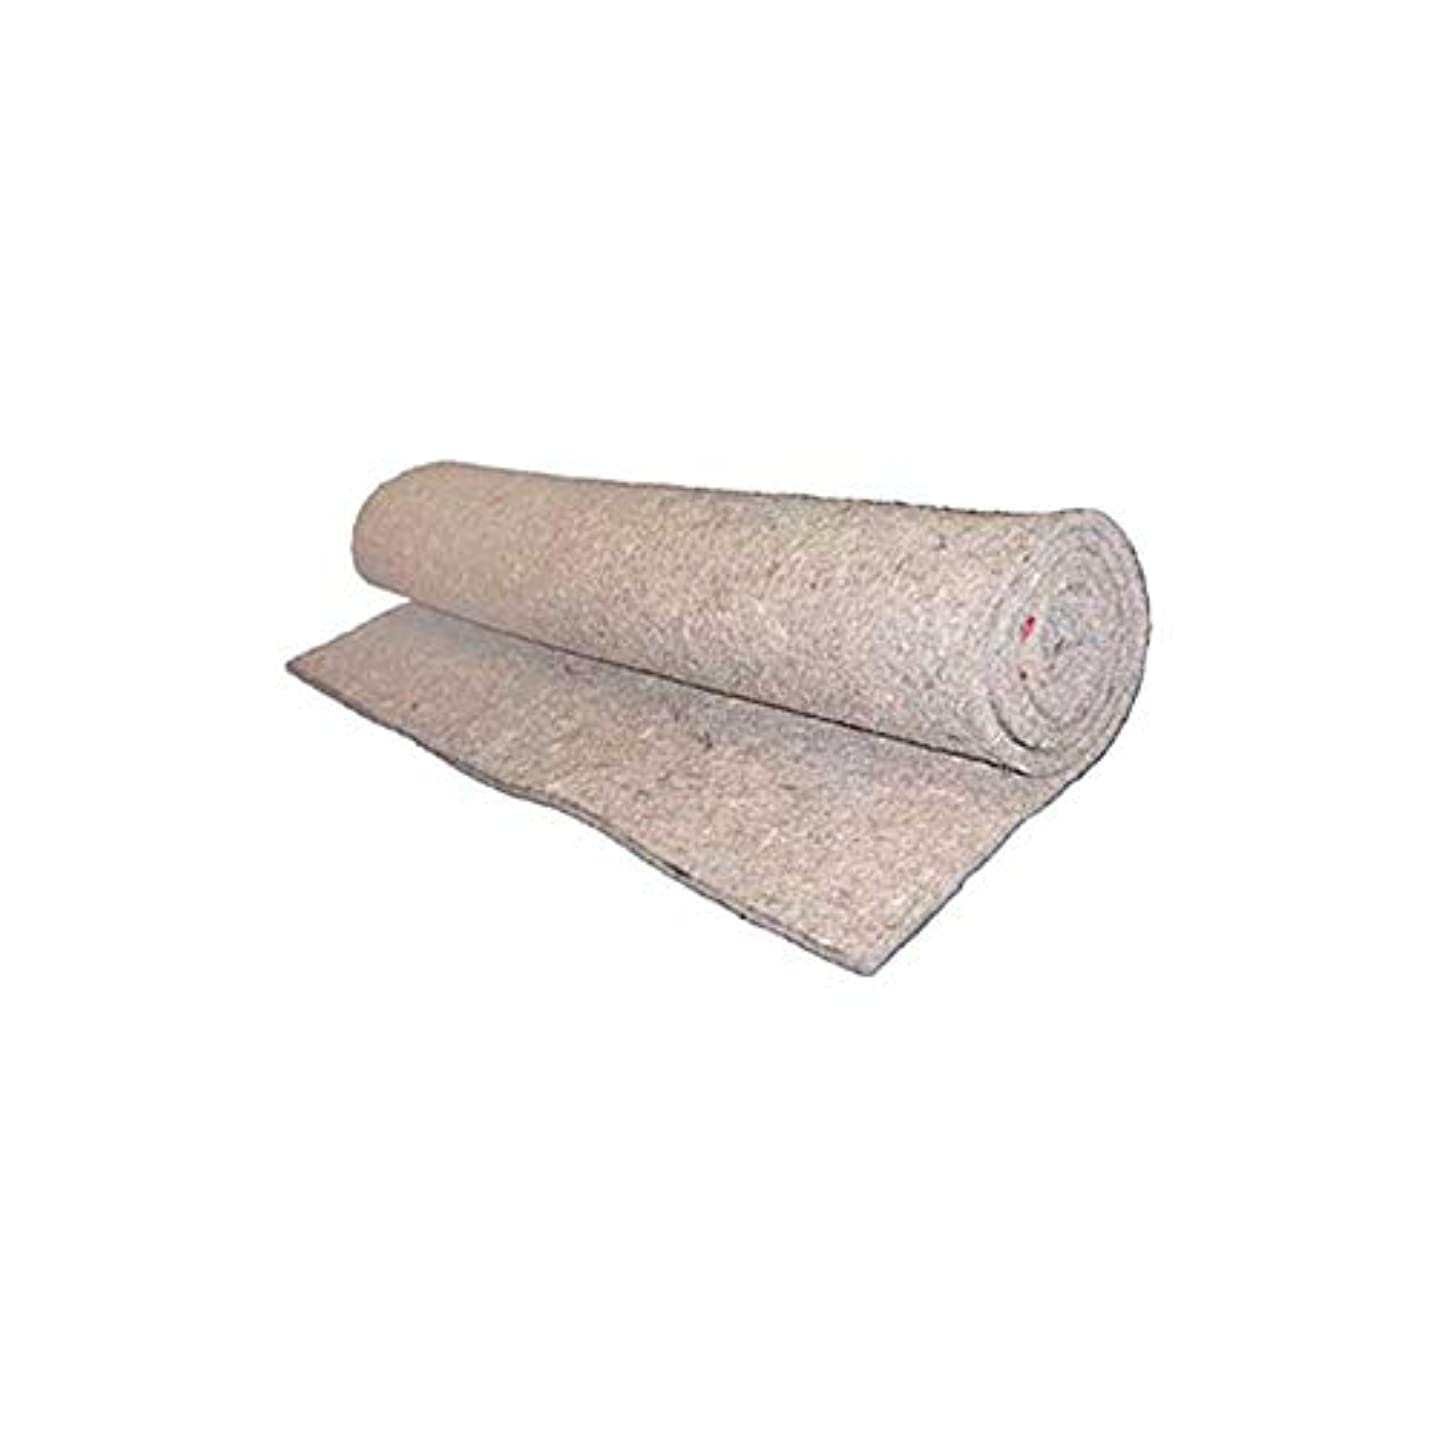 MACs Auto Parts 58-26251 Jute Backing - 72 Long X 36 Wide X 1/2 Thick